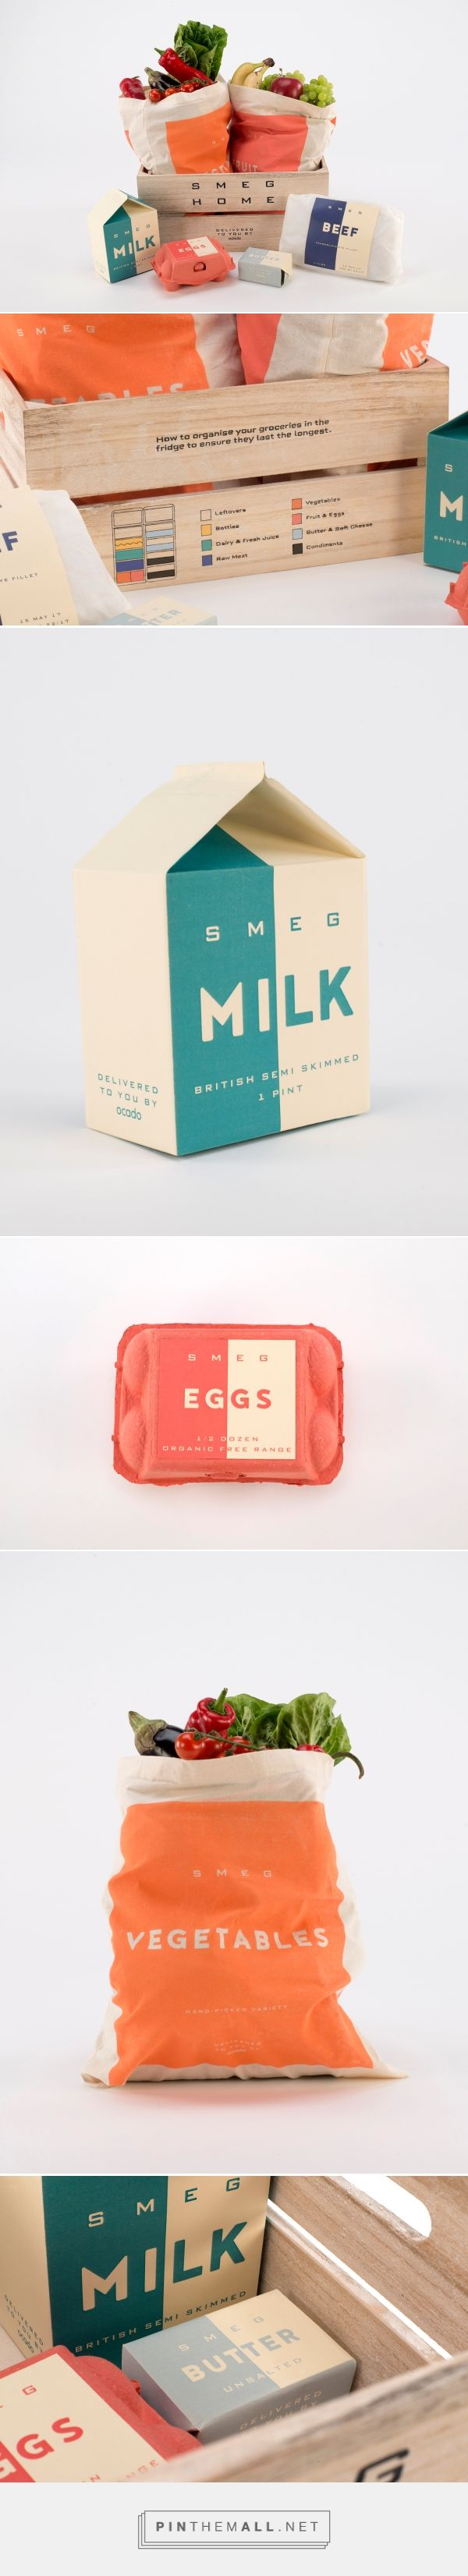 Smeg x Ocado Colour Coded Packaging (Student Project) - Packaging of the World - Creative Package Design Gallery - http://www.packagingoftheworld.com/2017/06/smeg-x-ocado-colour-coded-packaging.html